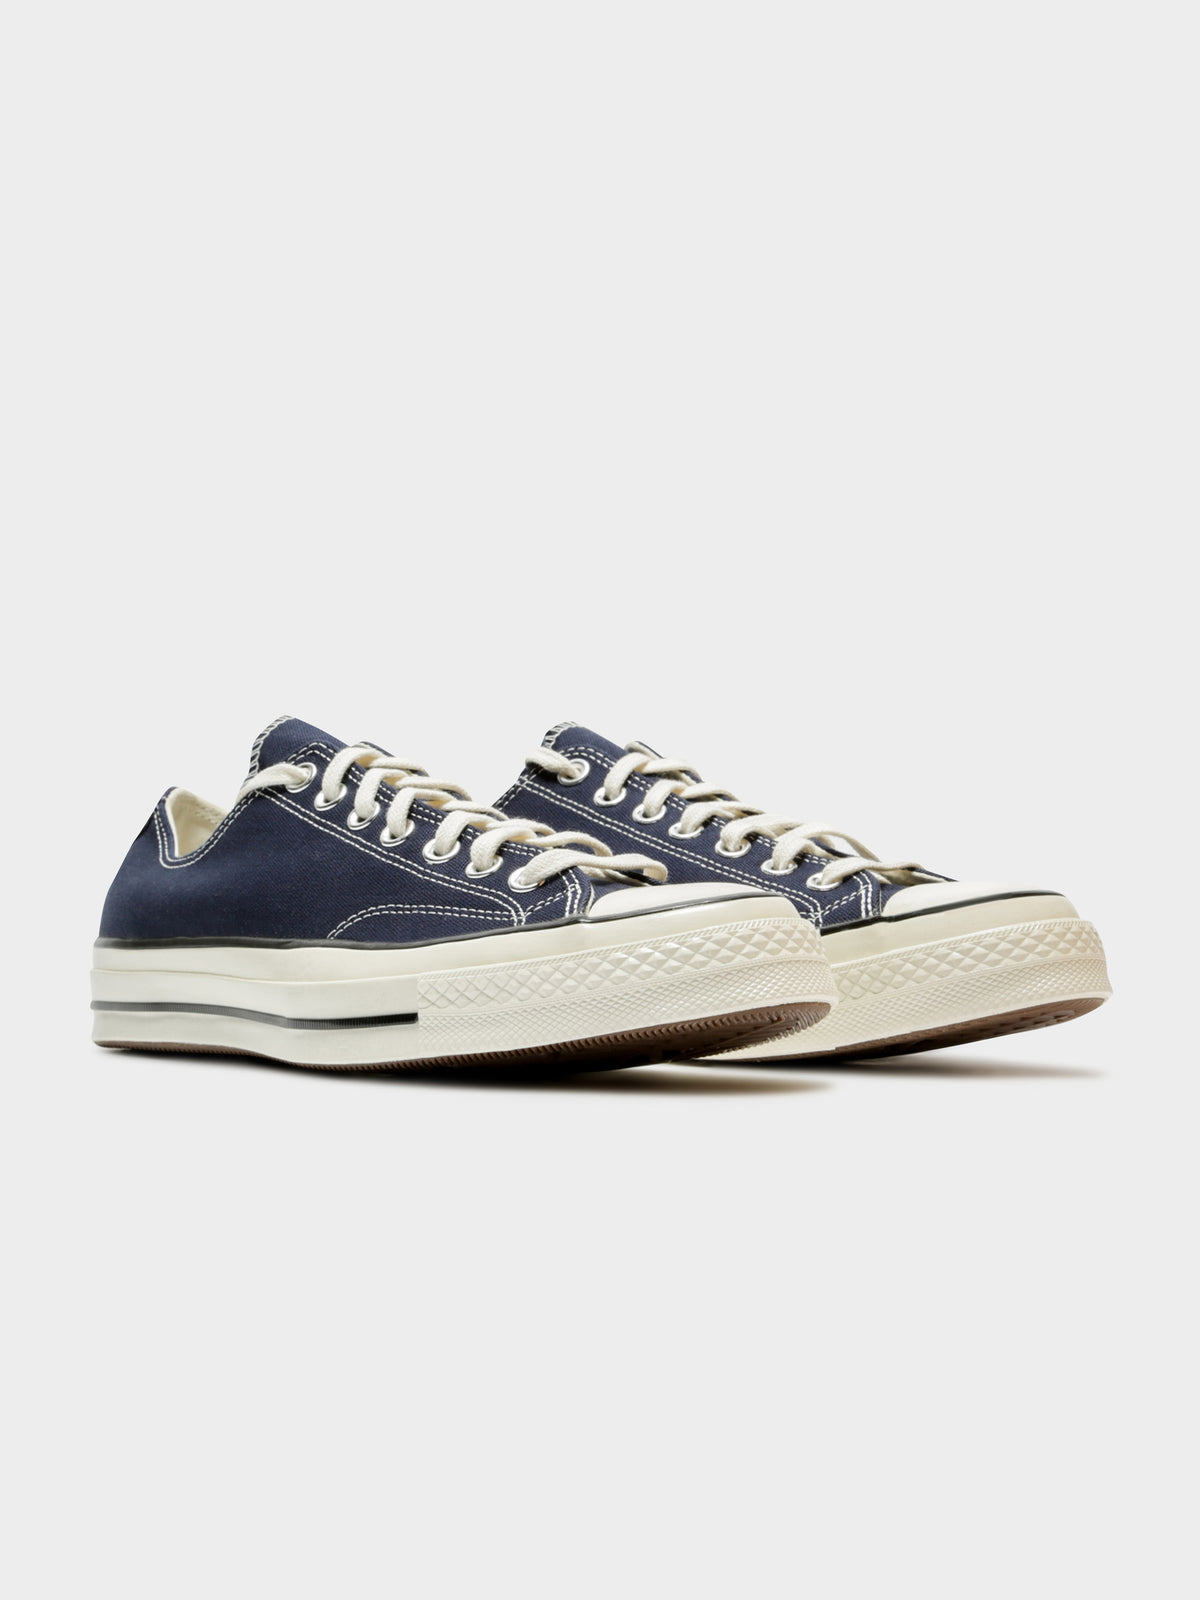 Mens Chuck 70 Low Top Sneakers in Navy & White